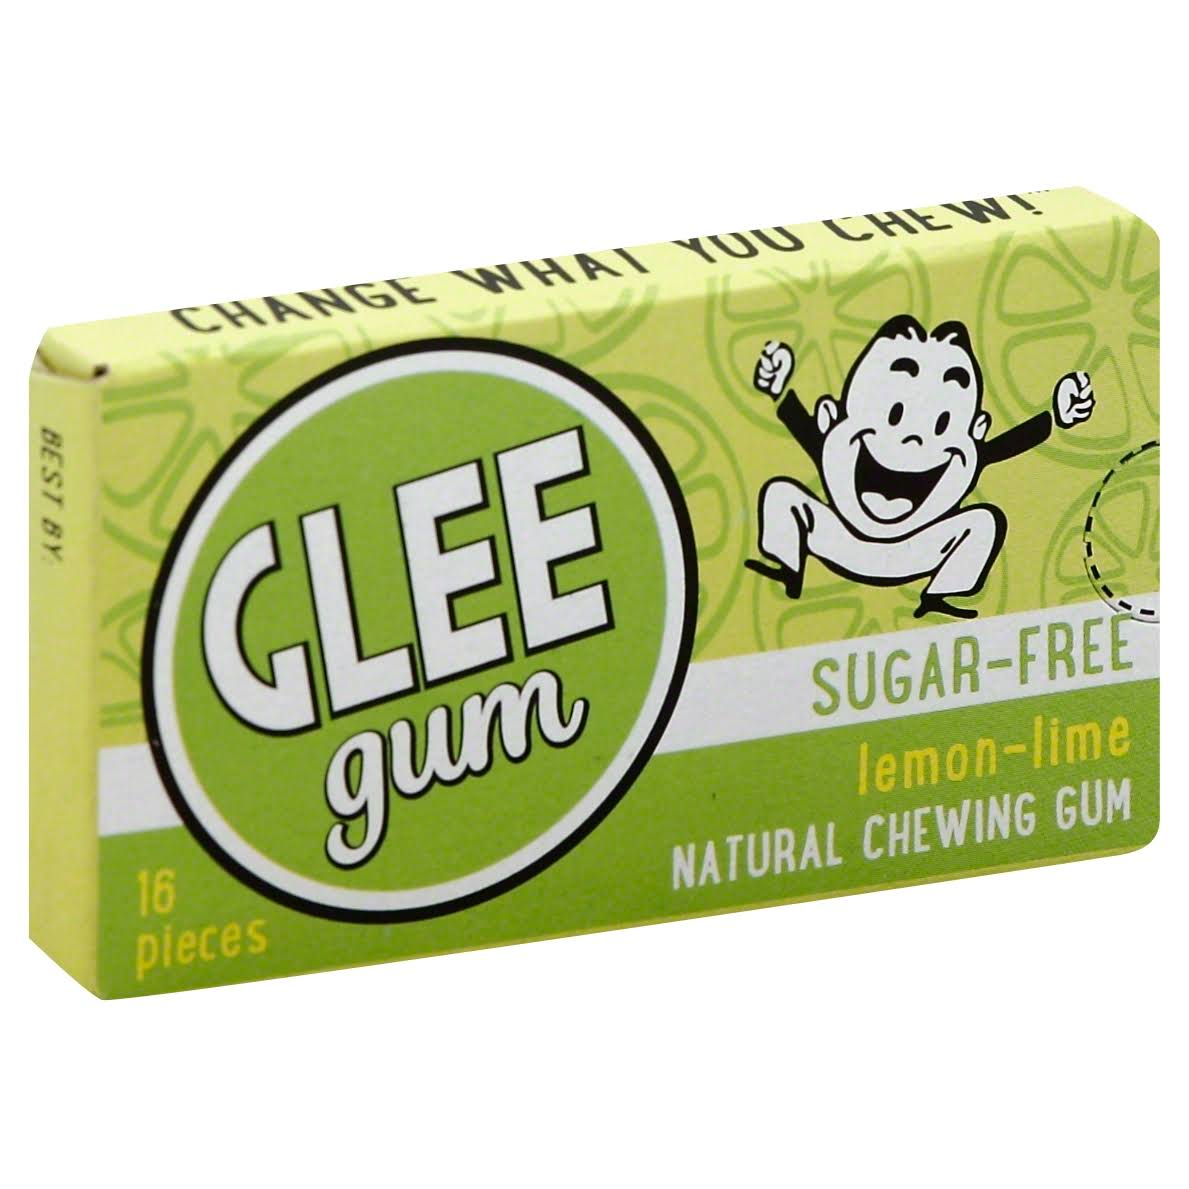 Glee Gum Sugar-Free - Lemon-Lime